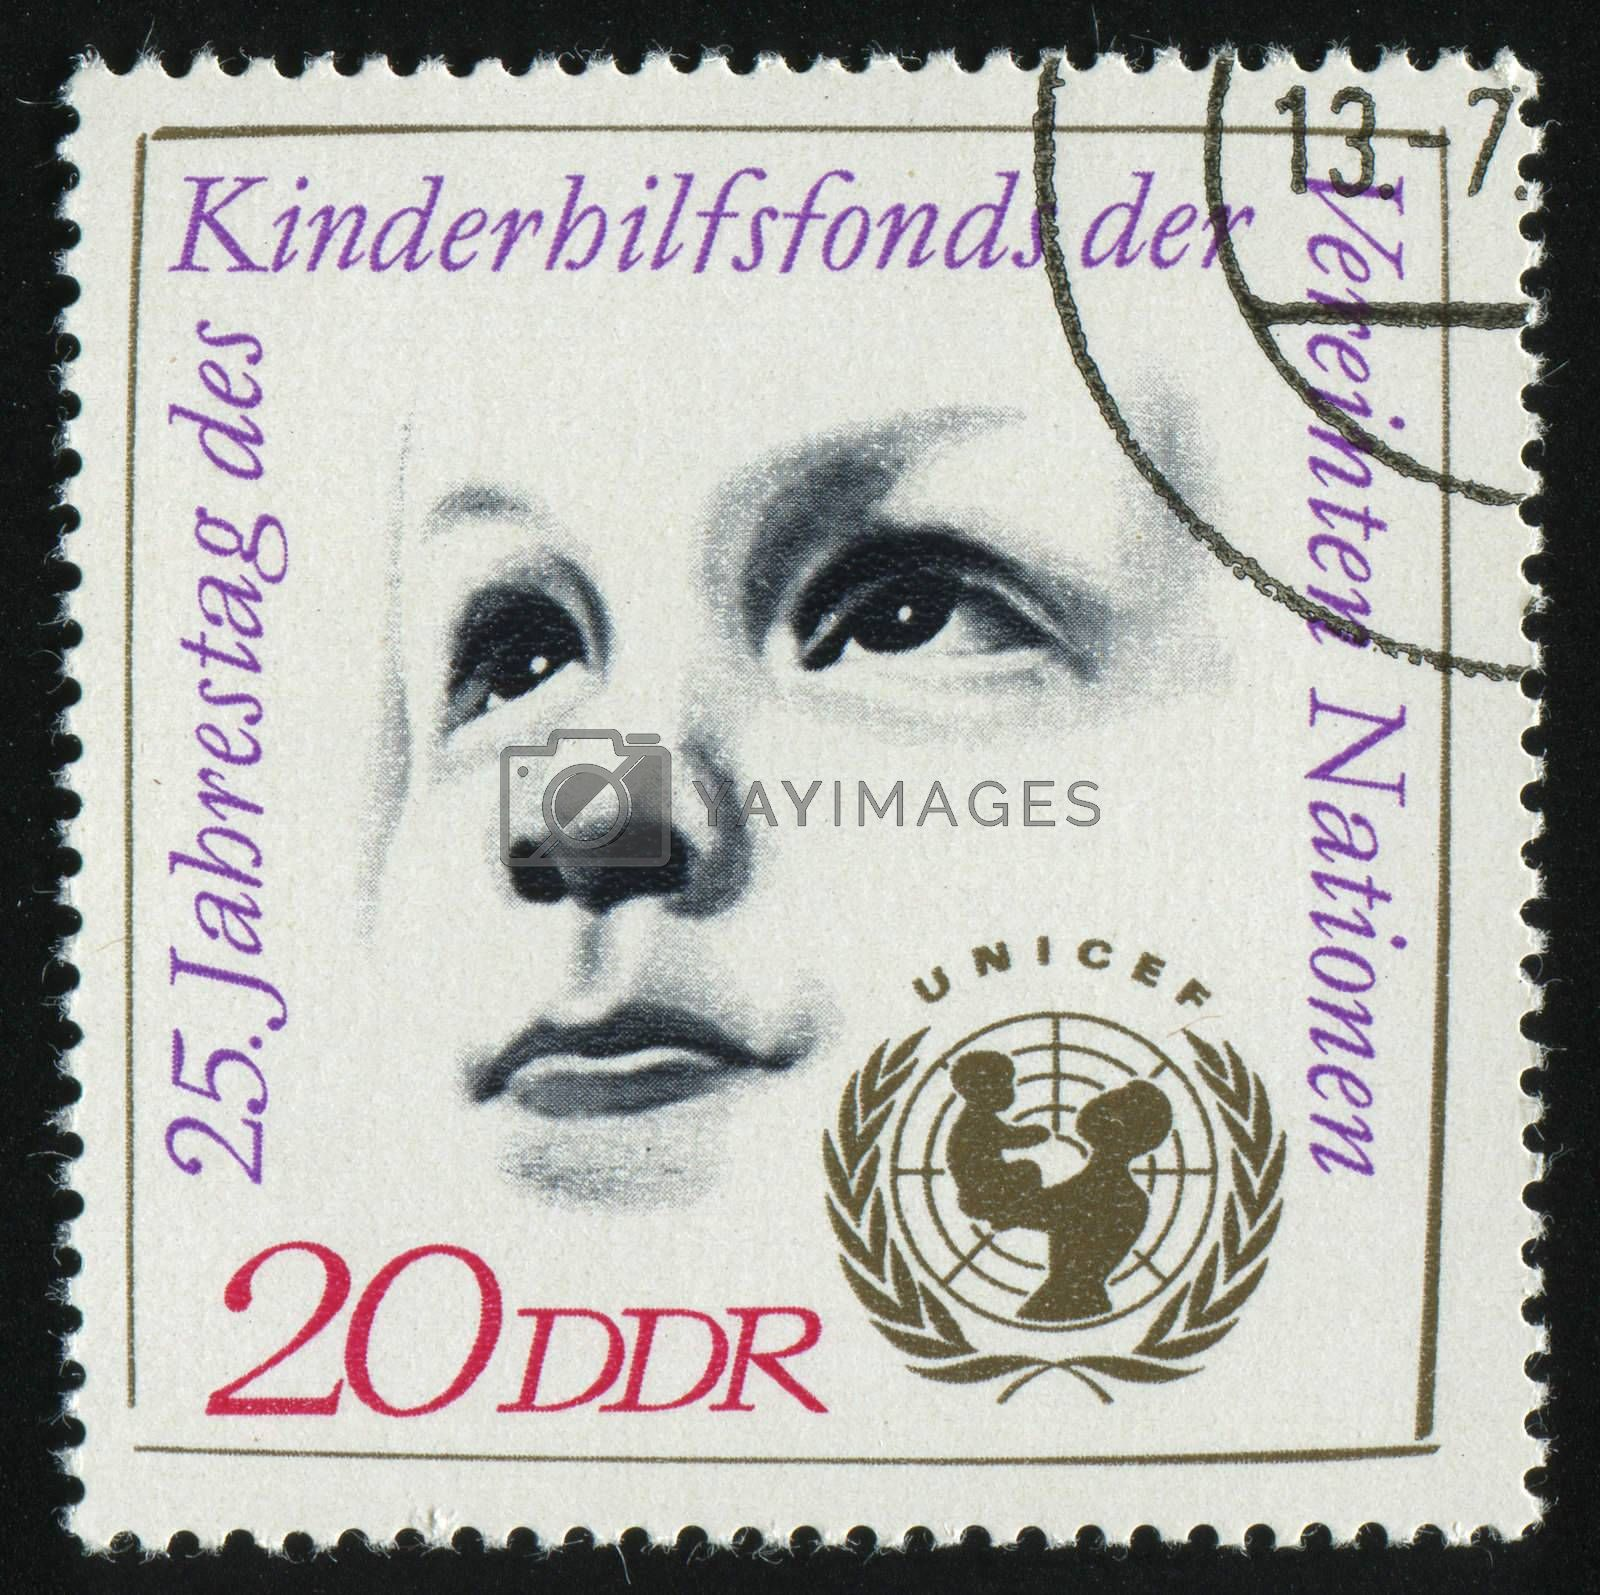 GERMANY- CIRCA 1971: stamp printed by Germany, shows Childs Head, UNICEF Emblem, circa 1971.